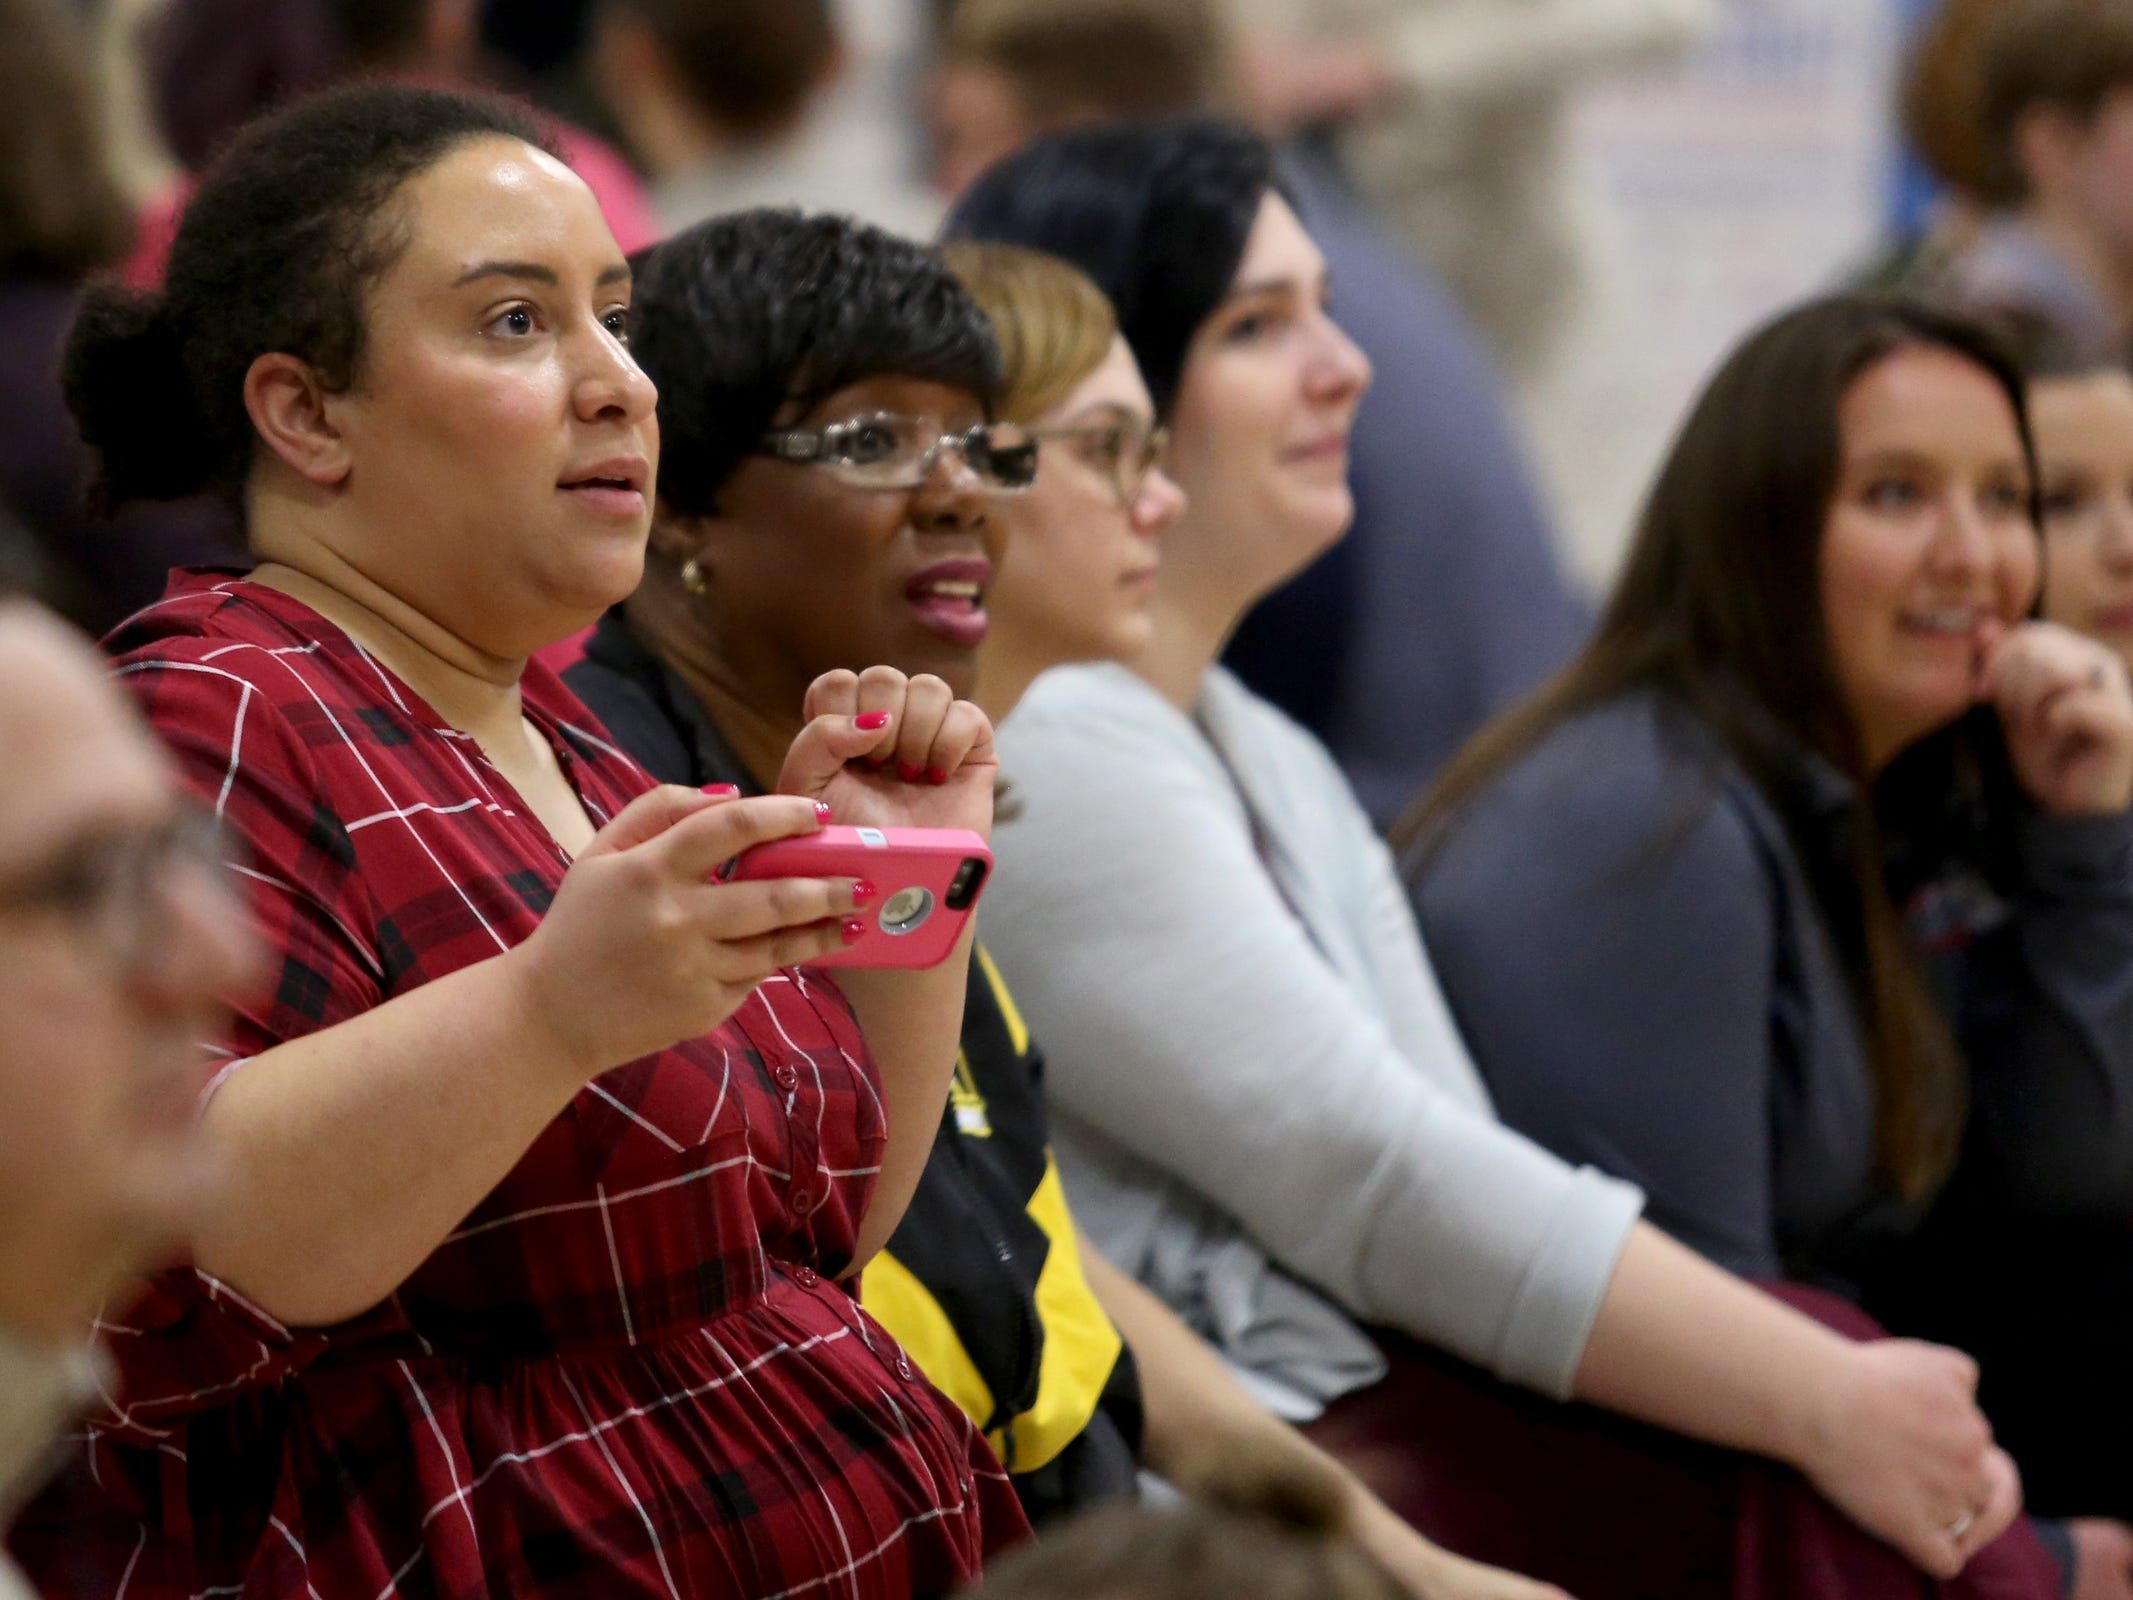 People watch the second annual House vs. Senate charity basketball tournament at the Boys & Girls Club in Salem on March 13, 2019. The tournament raised more than $10,000 for the Oregon Alliance of Boys & Girls Clubs.